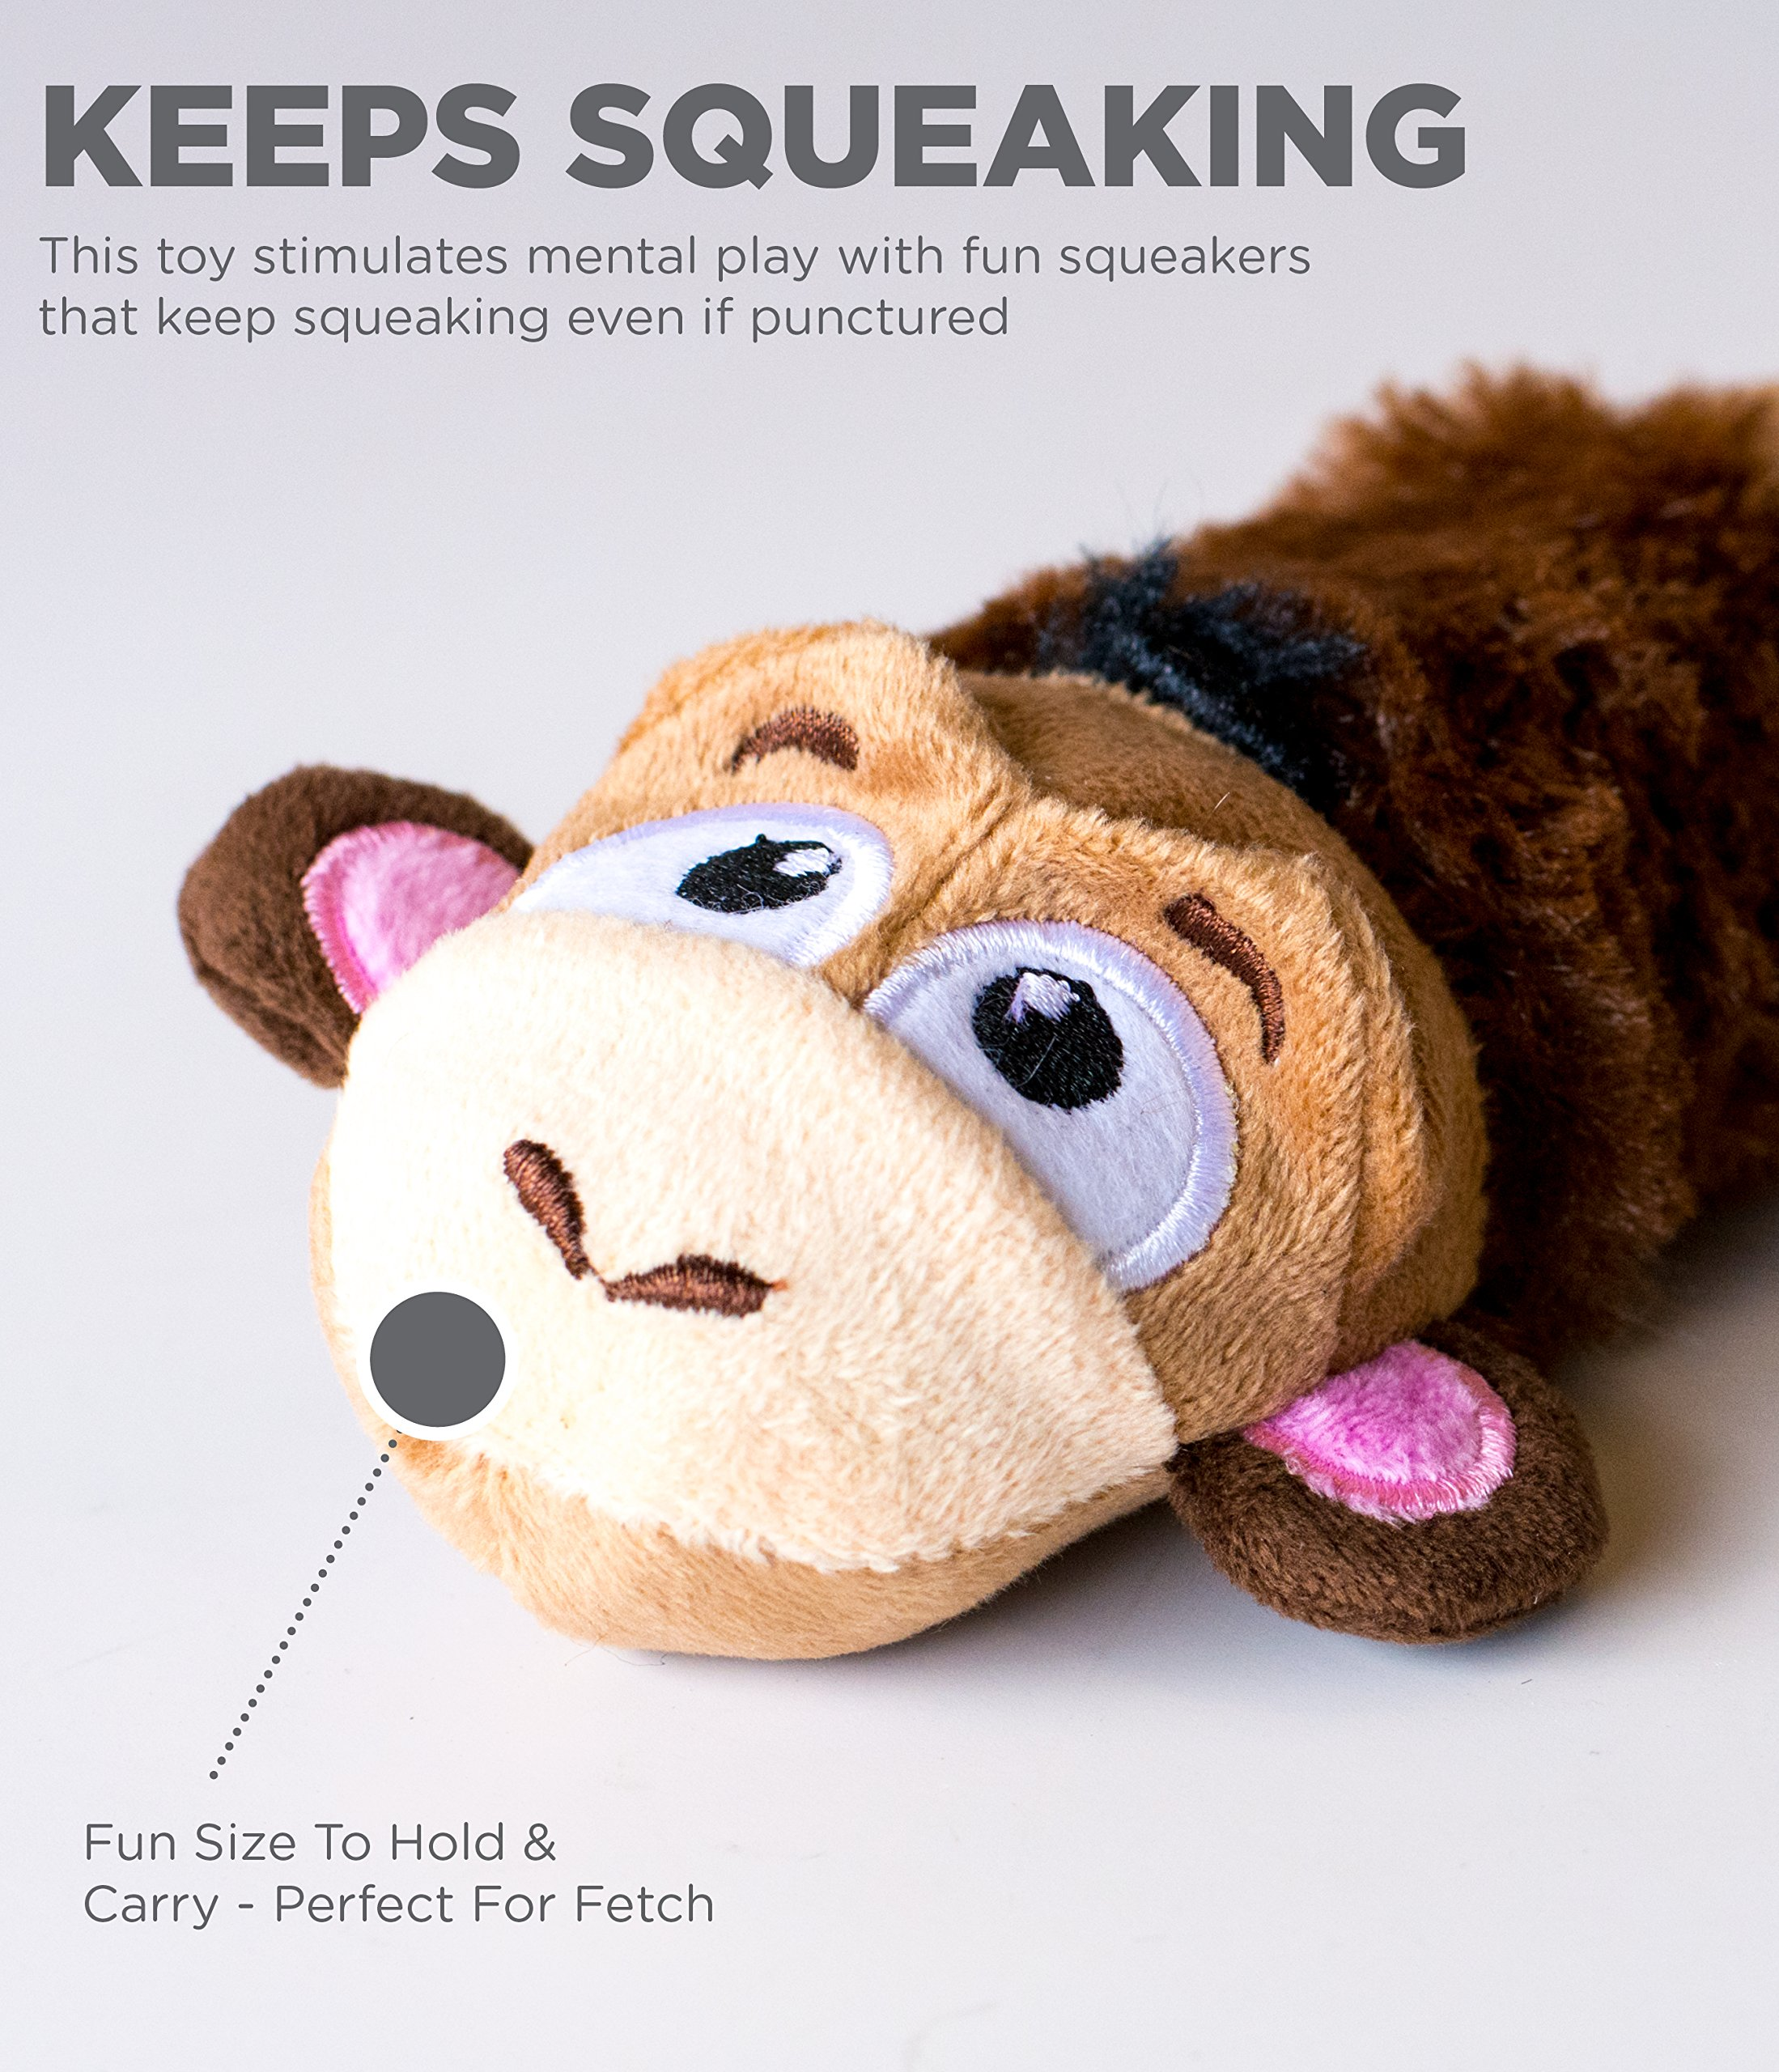 Petstages-Just-For-Fun-No-Stuffing-Plush-LiL-Squeak-Monkey-Dog-Toy-for-Small-Dogs